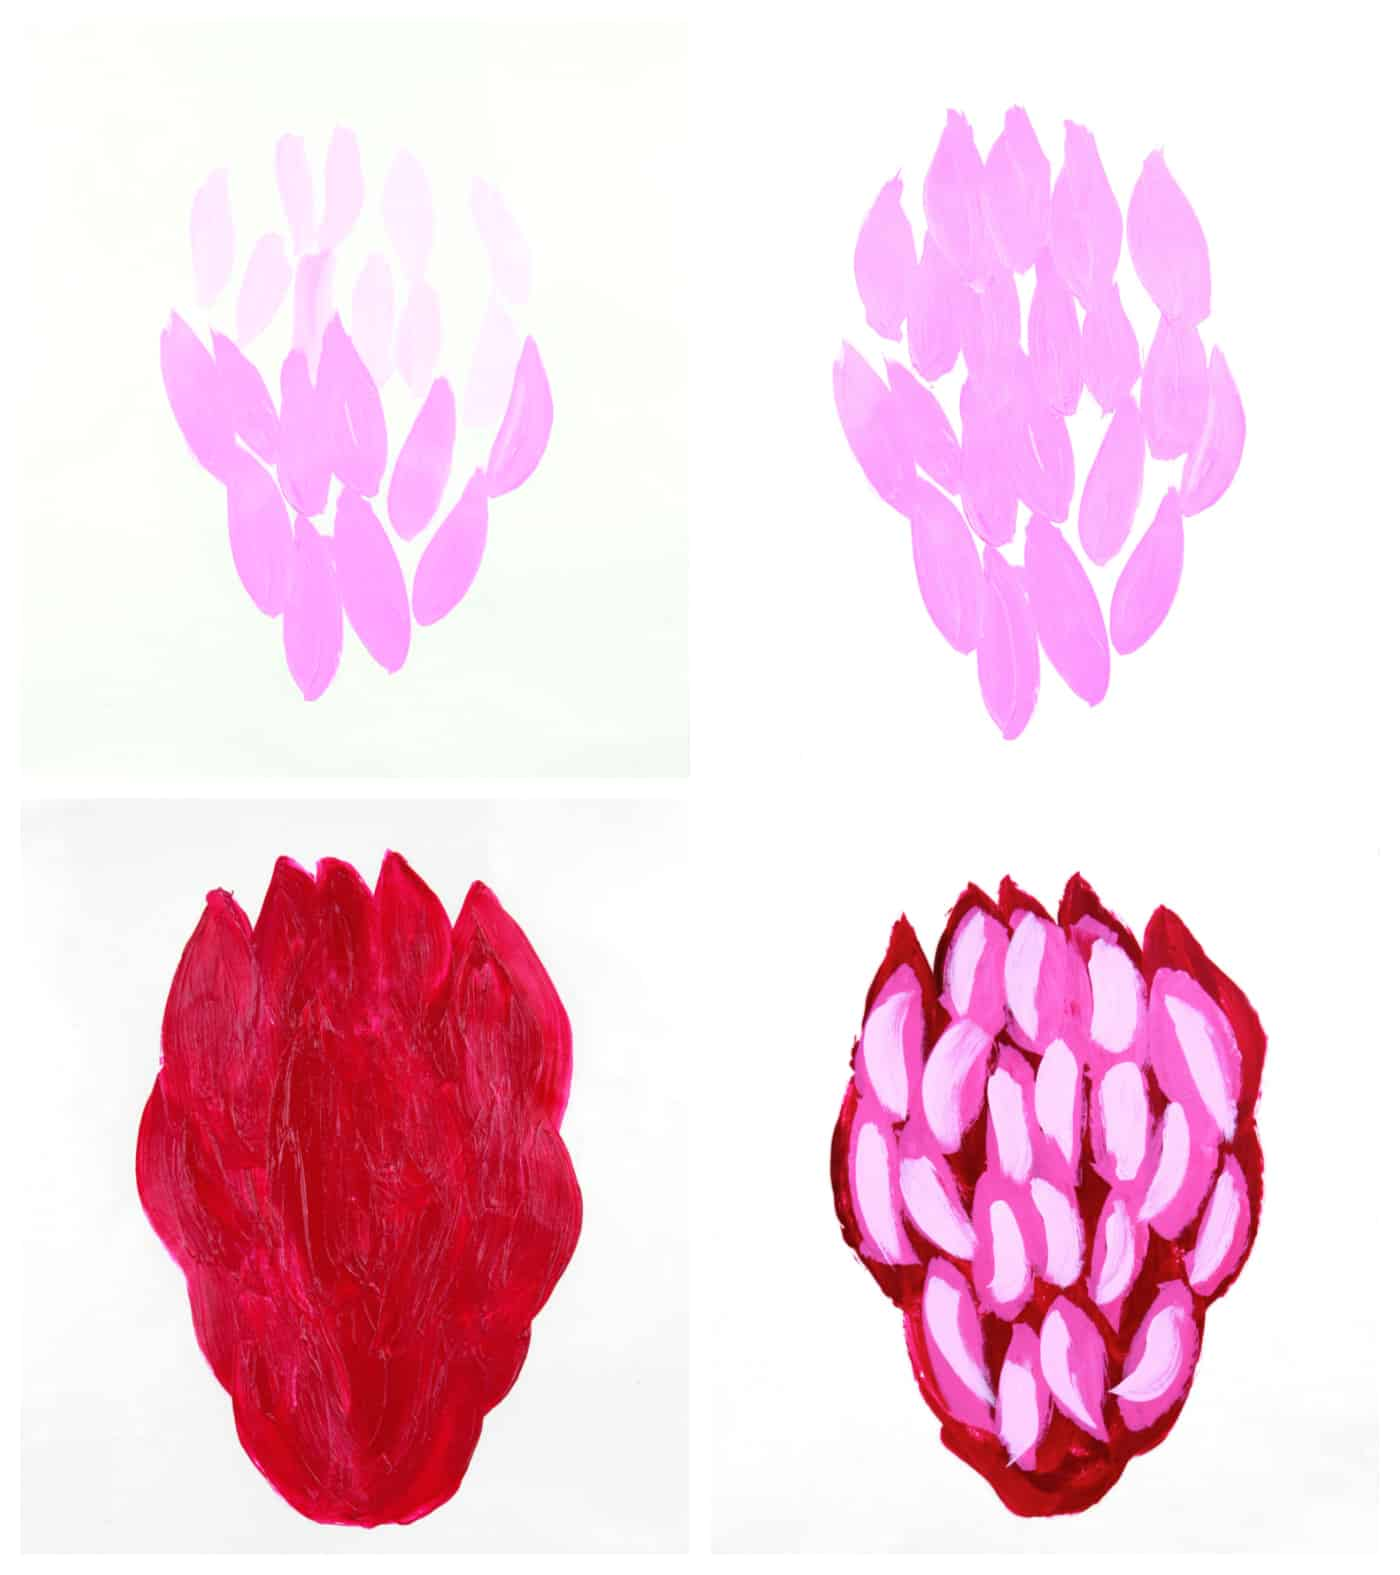 acrylic paint gel transfer steps showing front and back of pink flower painted design